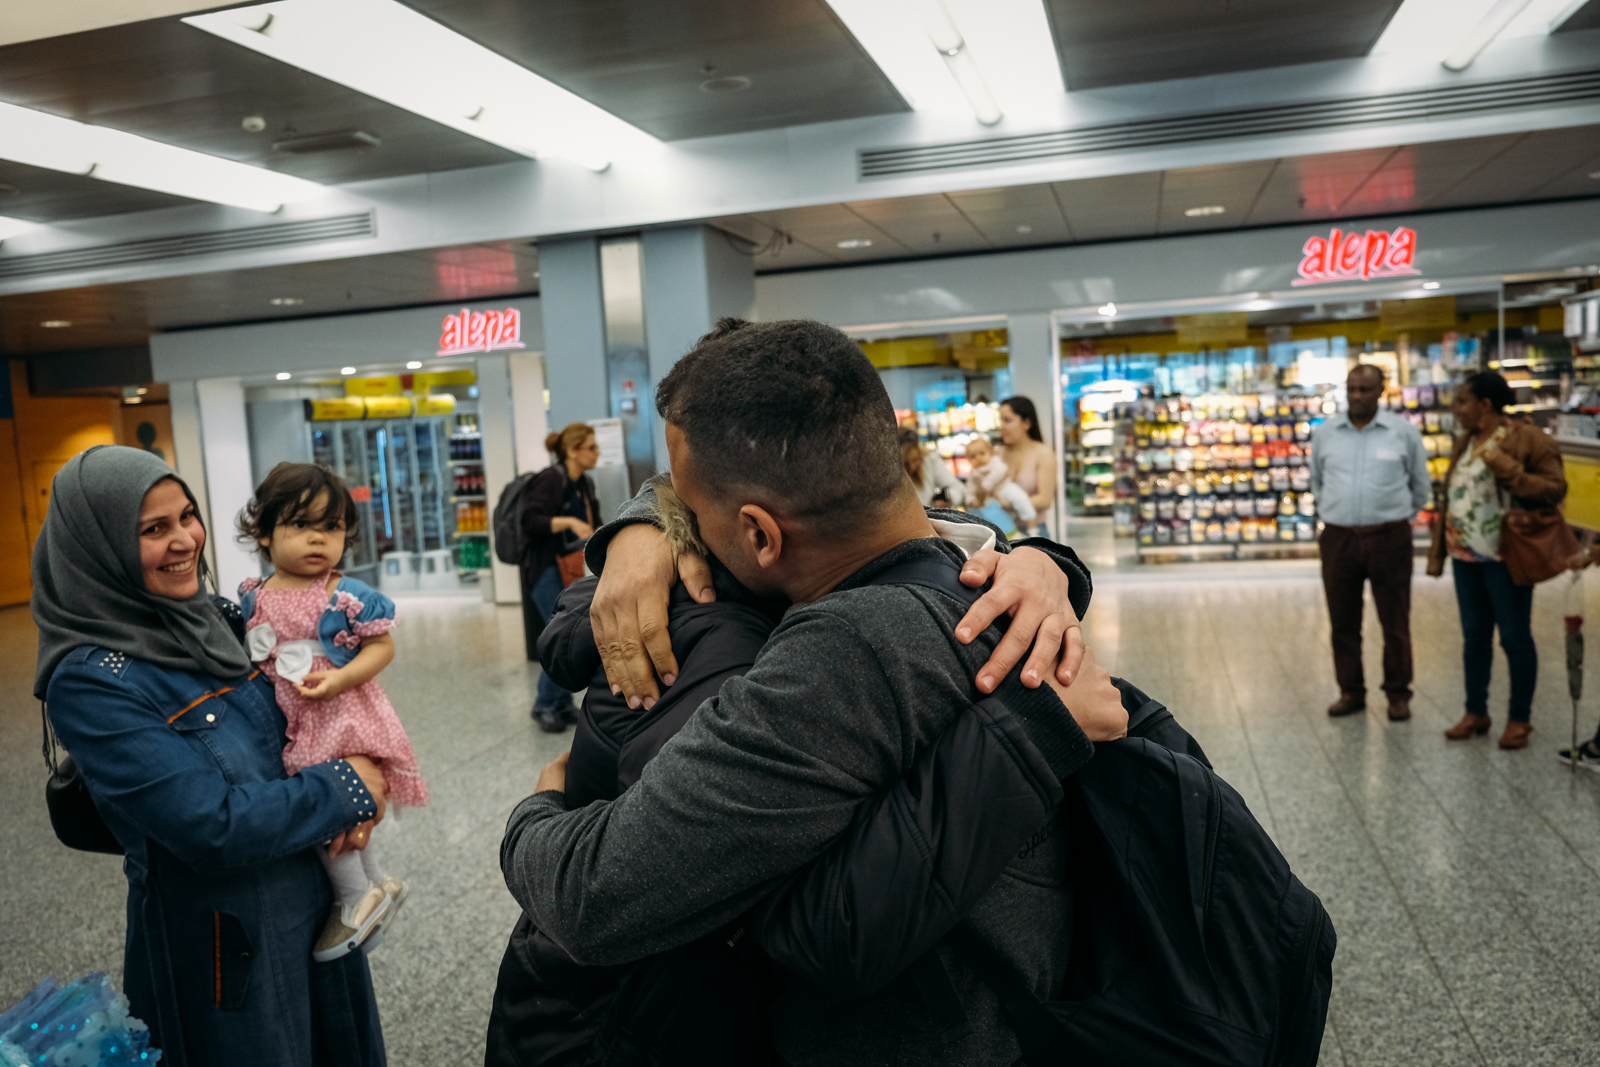 After 2 years spent apart, finally Yousuf meet again his family. The youngest daughter barely recognised him. She's born only few months before her dad left for Finland. They are all headed to Turku where they'll start their new life together.